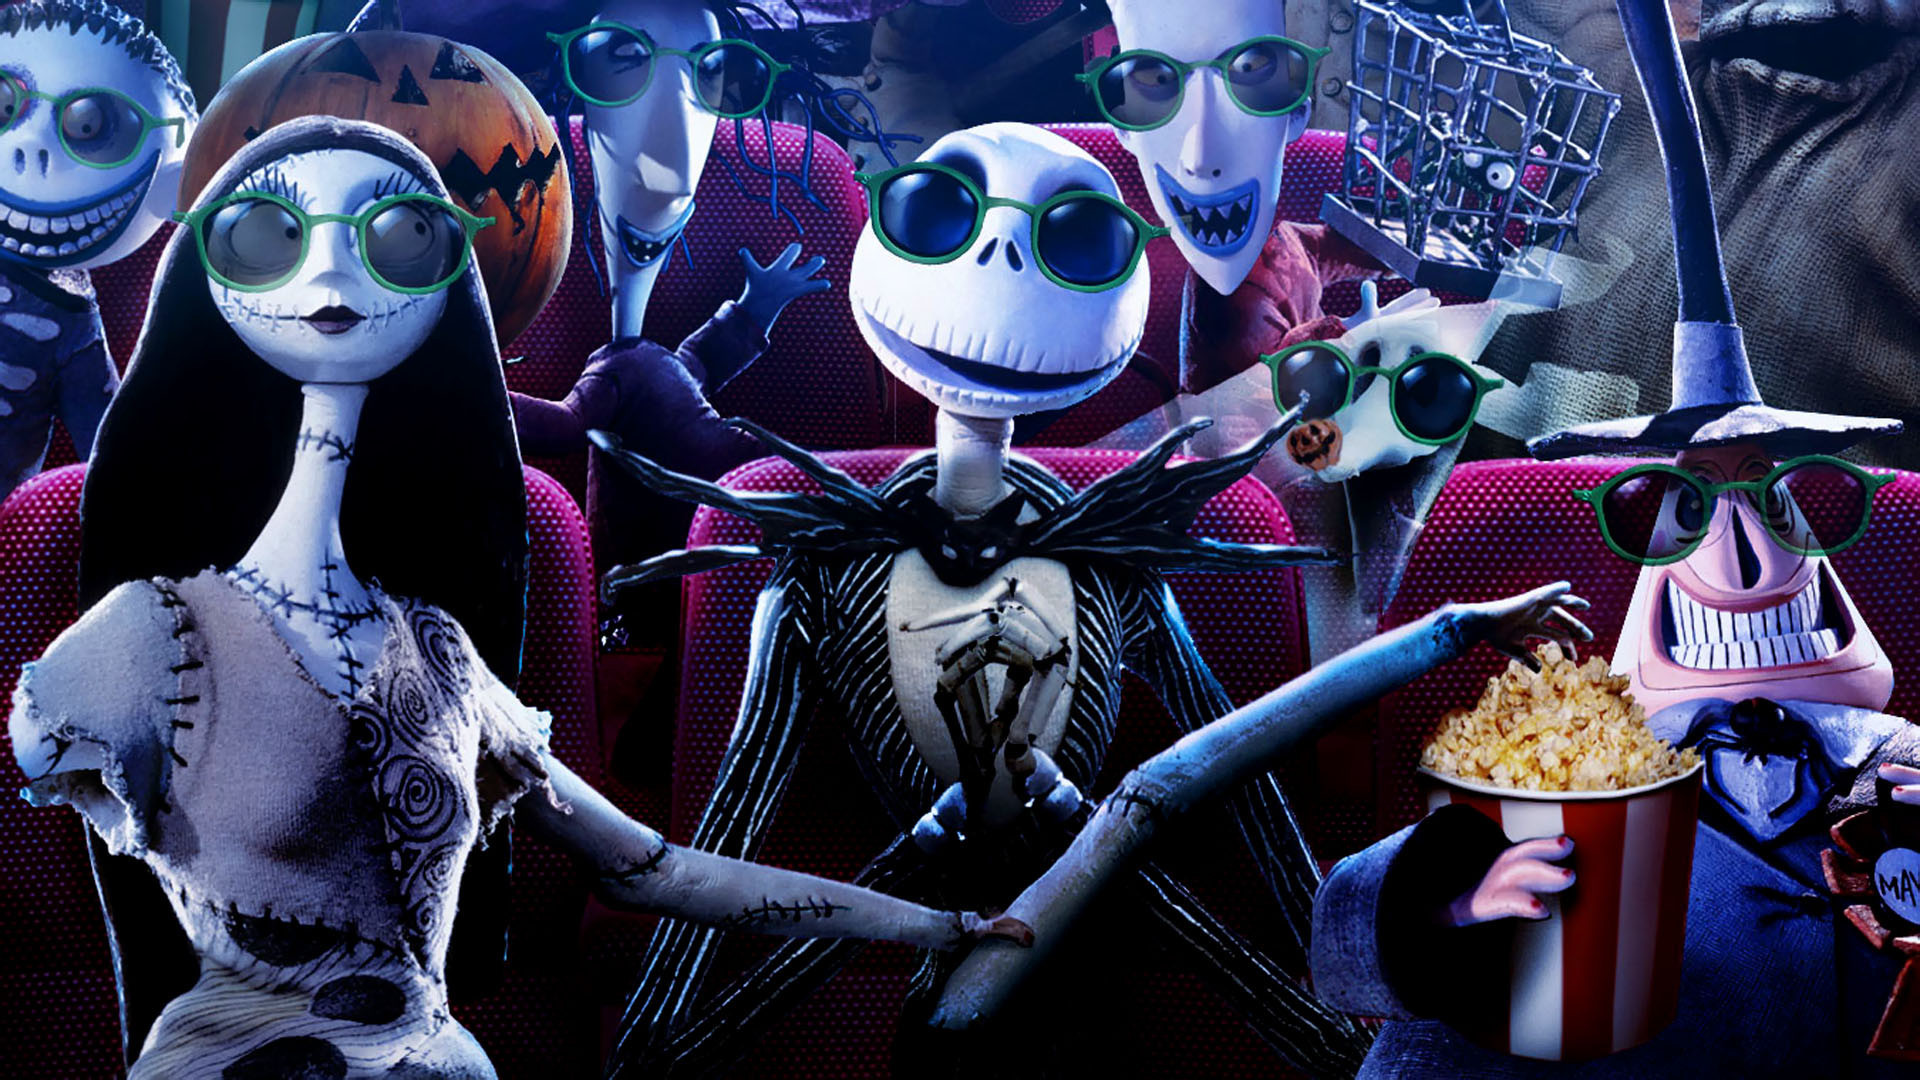 1920x1080 The nightmare before christmas original.